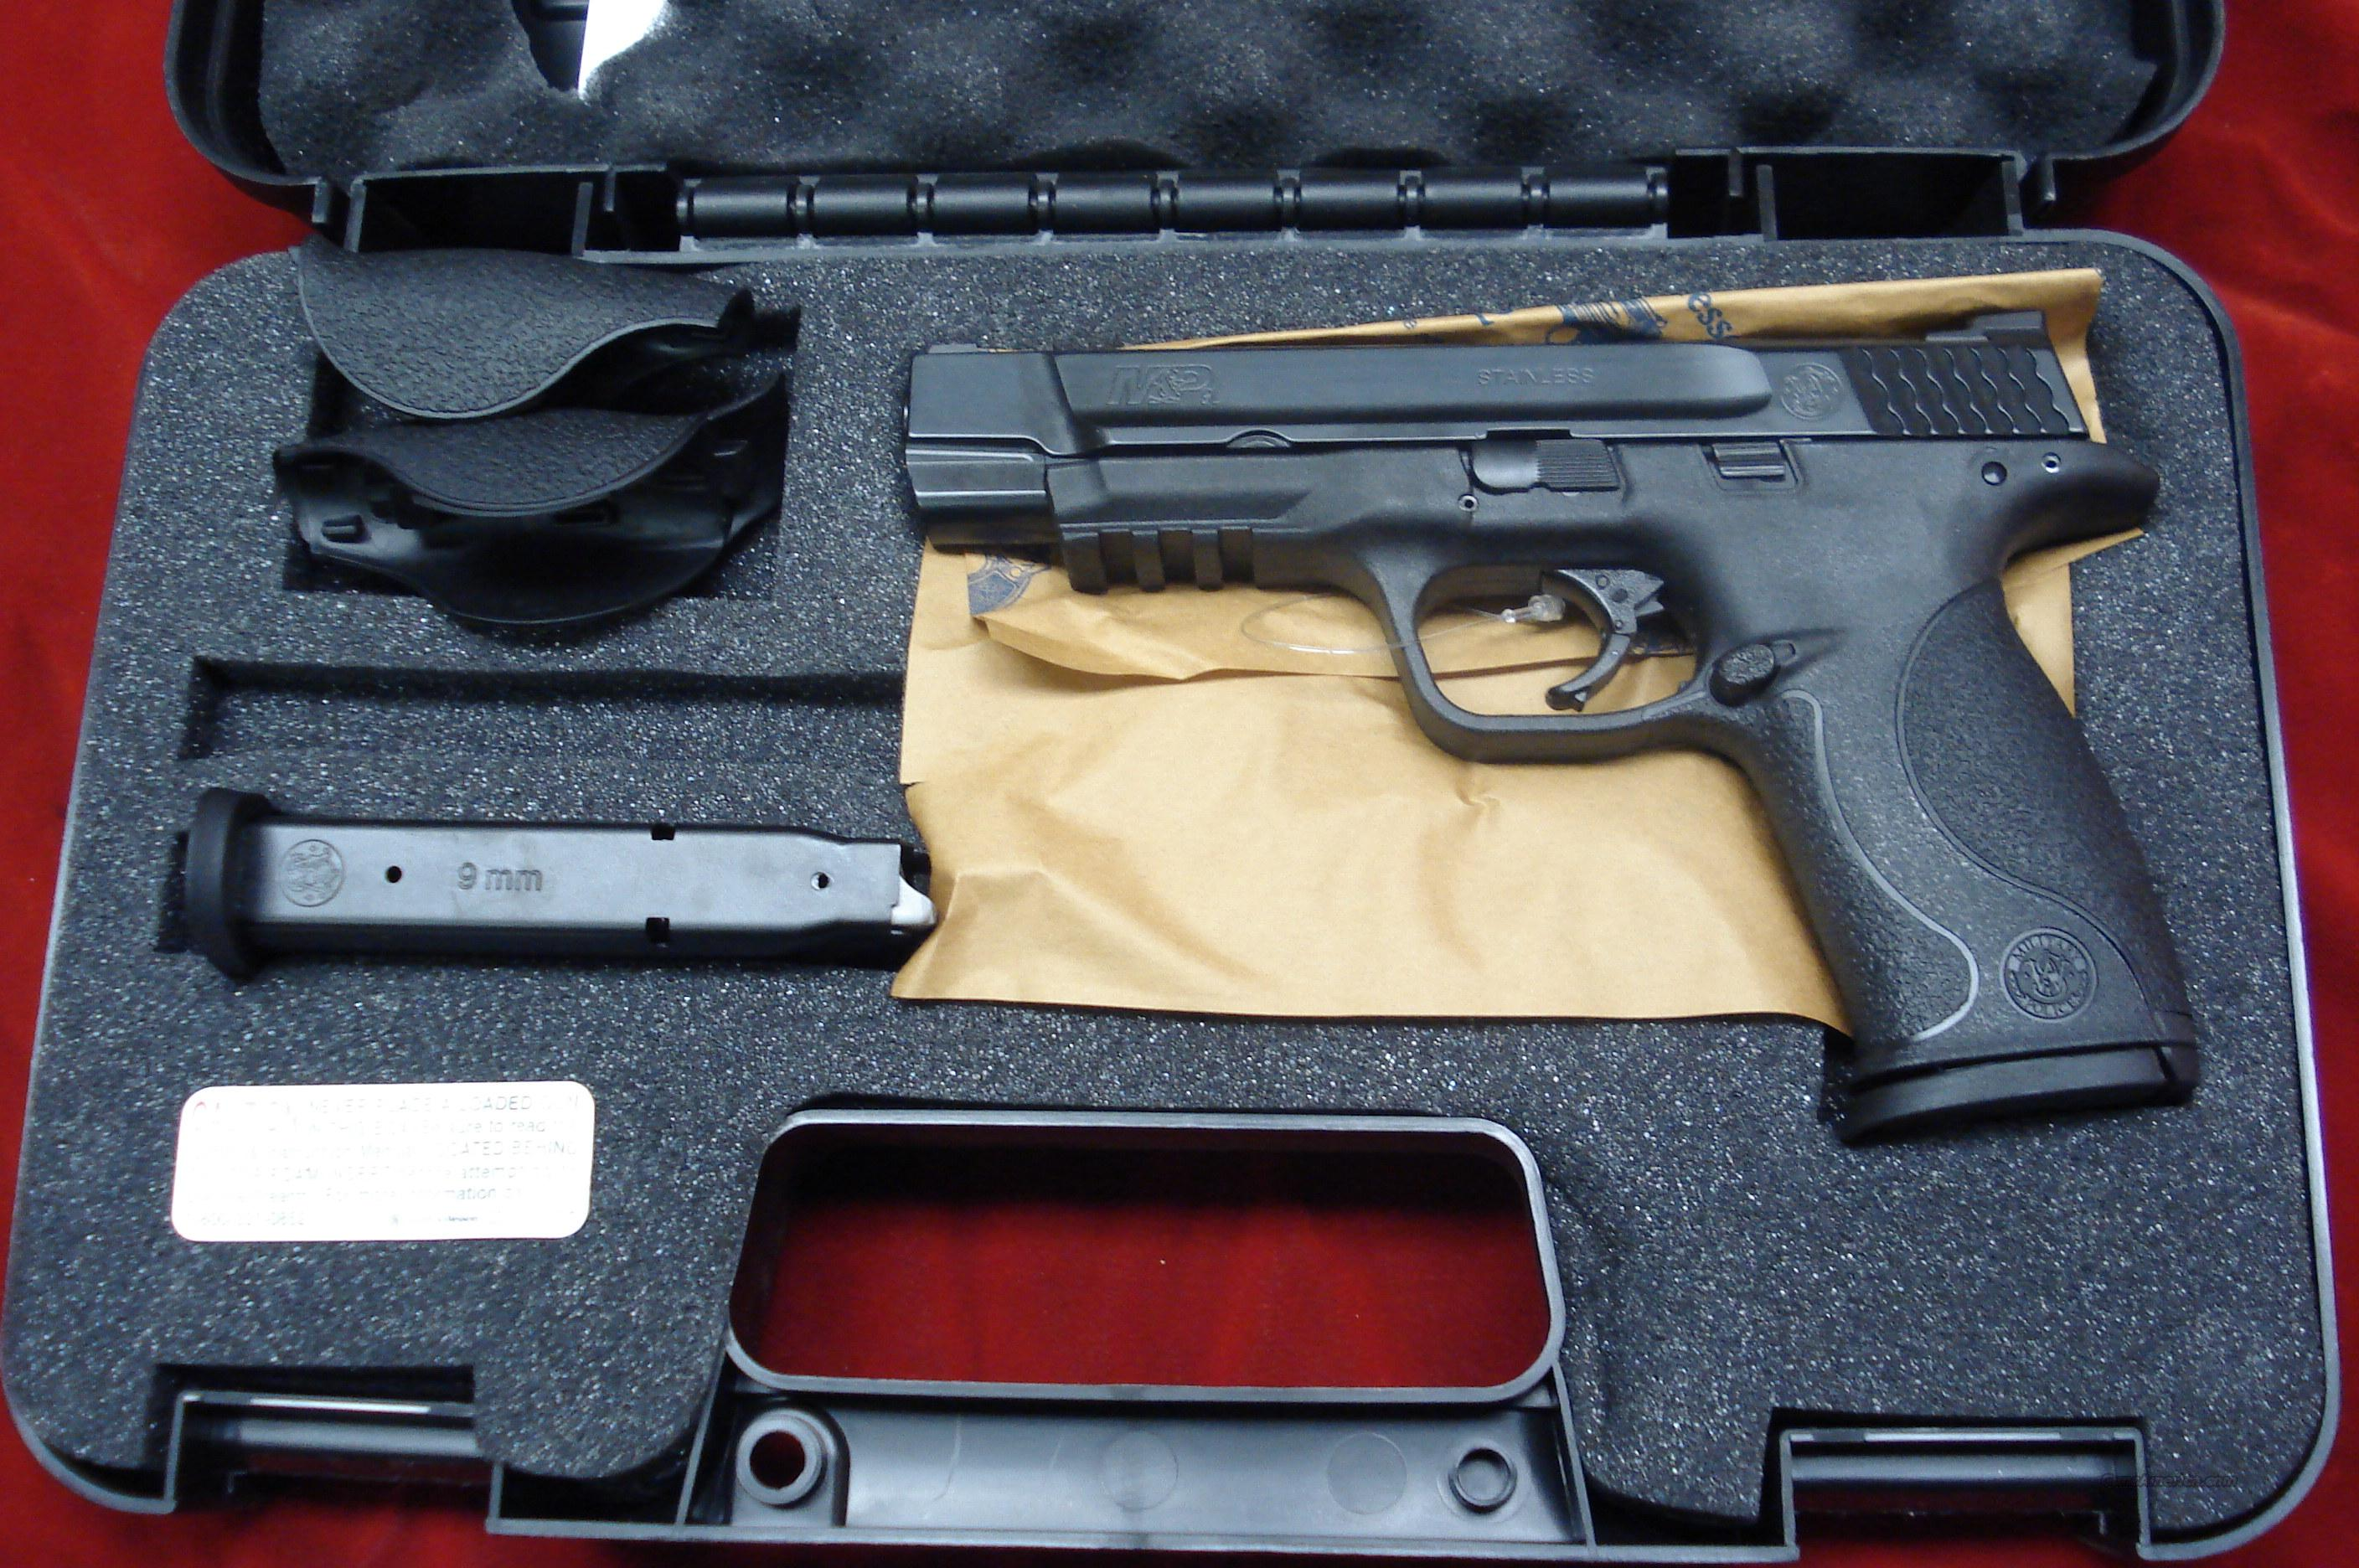 SMITH AND WESSON M&PL (LONG SLIDE) 9MM HIGH/CAP NEW  Guns > Pistols > Smith & Wesson Pistols - Autos > Polymer Frame